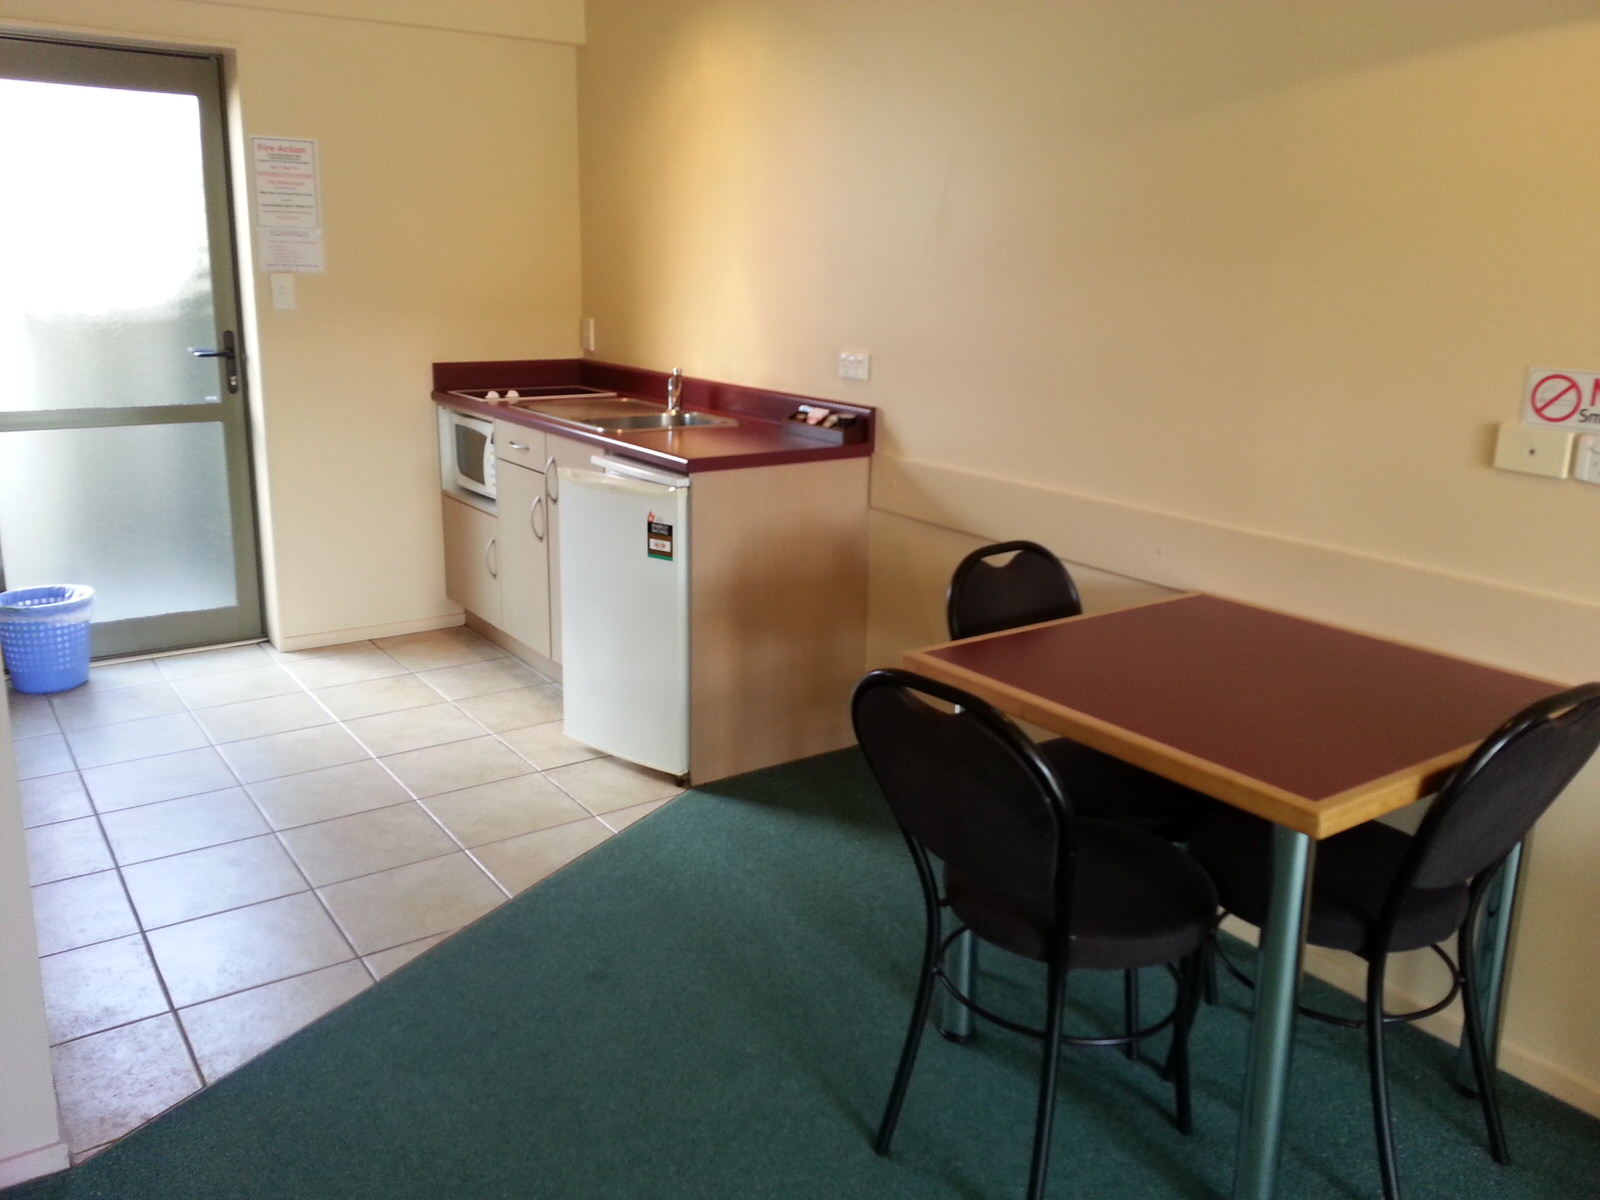 New Castle Motor Lodge Deluxe Studio Unit Image 3